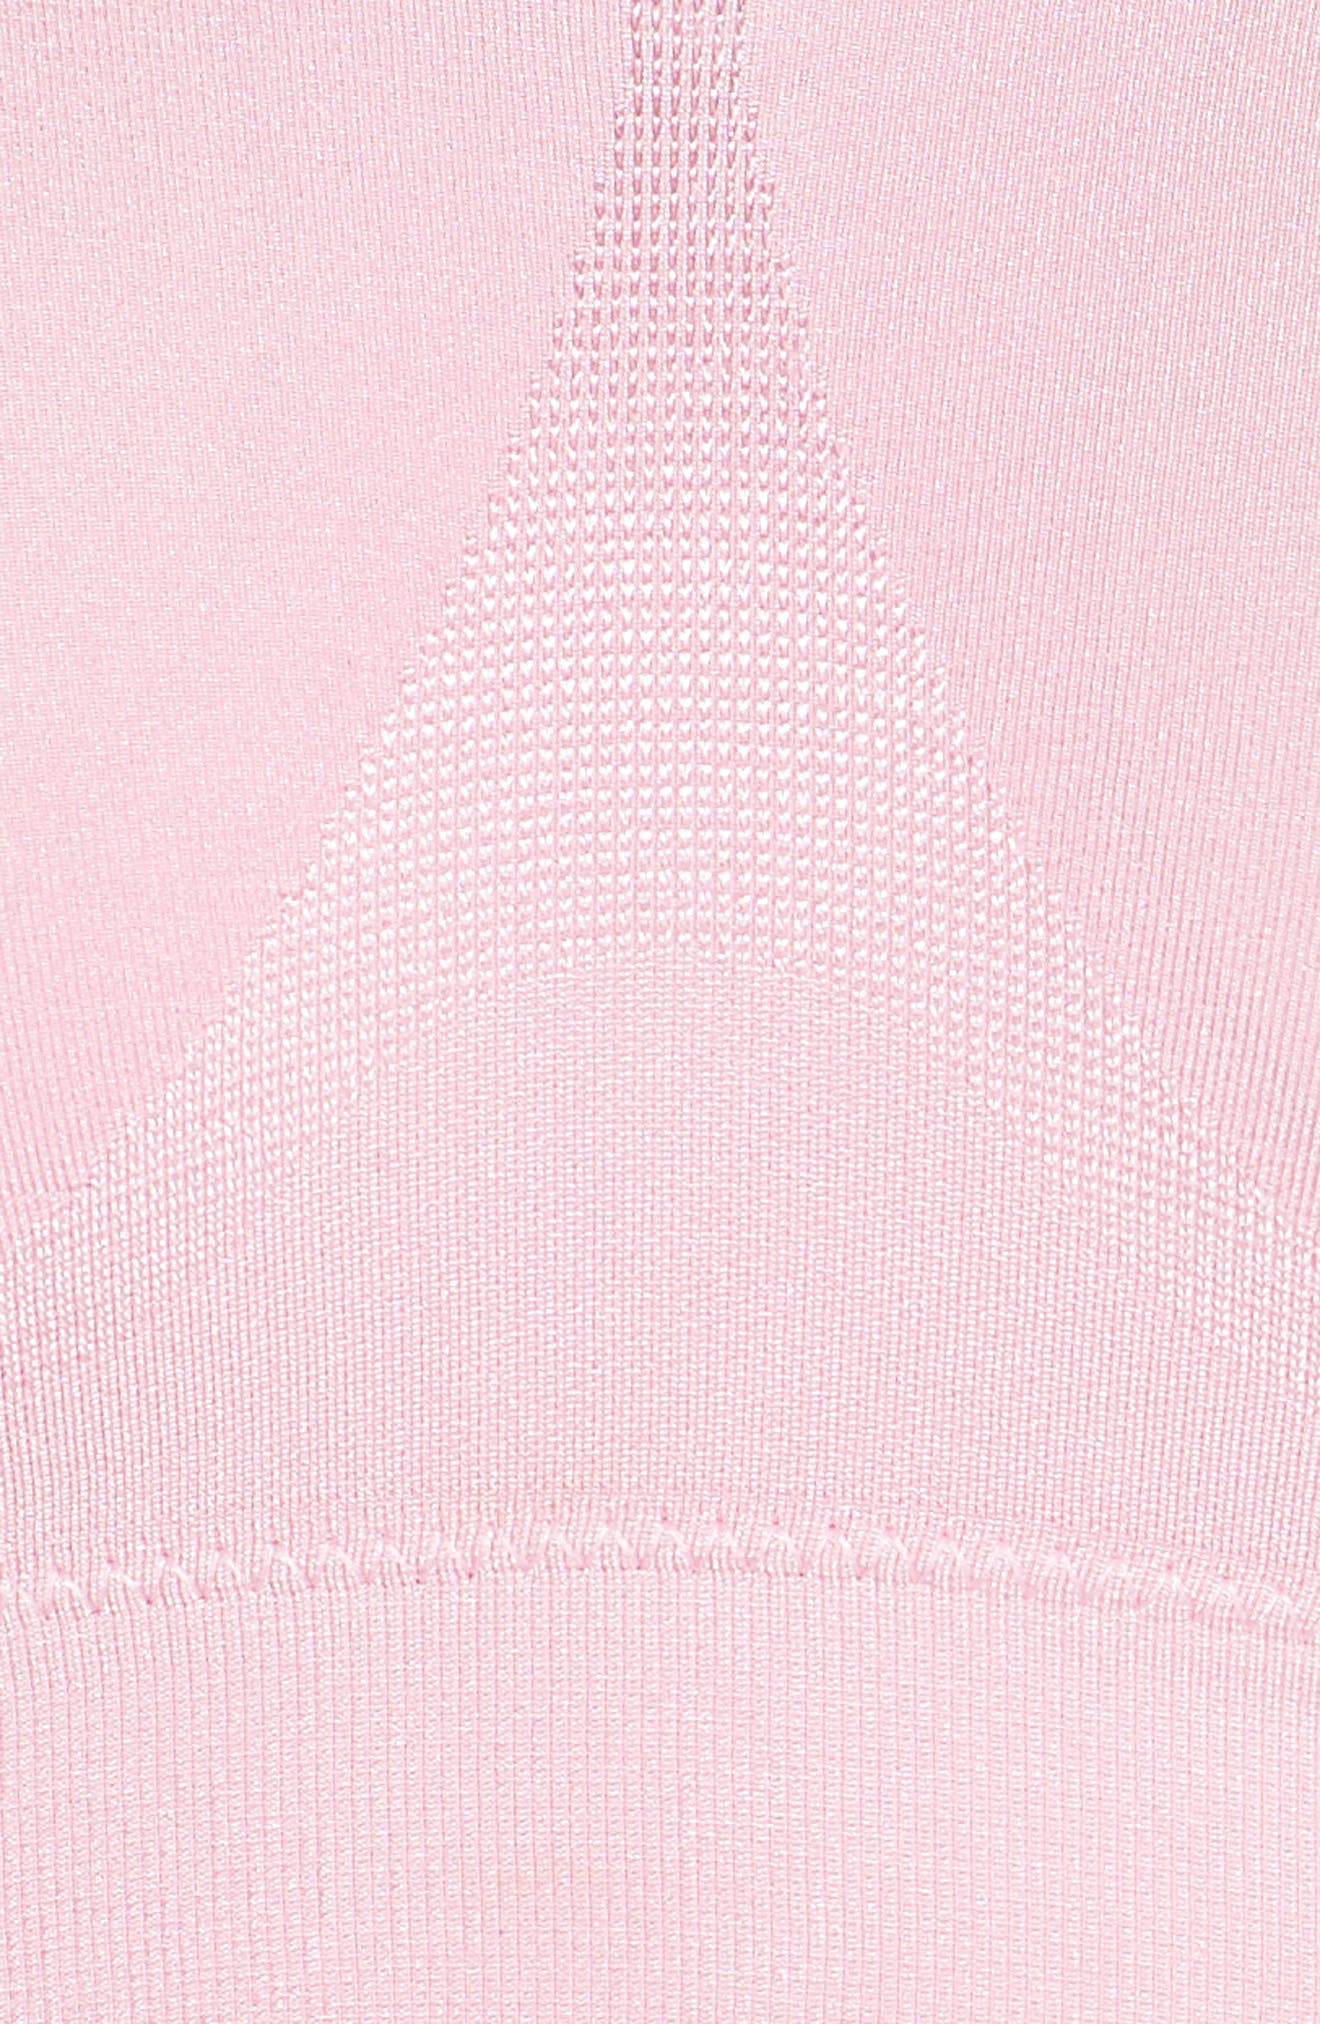 B Smooth Seamless Bralette,                             Alternate thumbnail 8, color,                             Cameo Pink